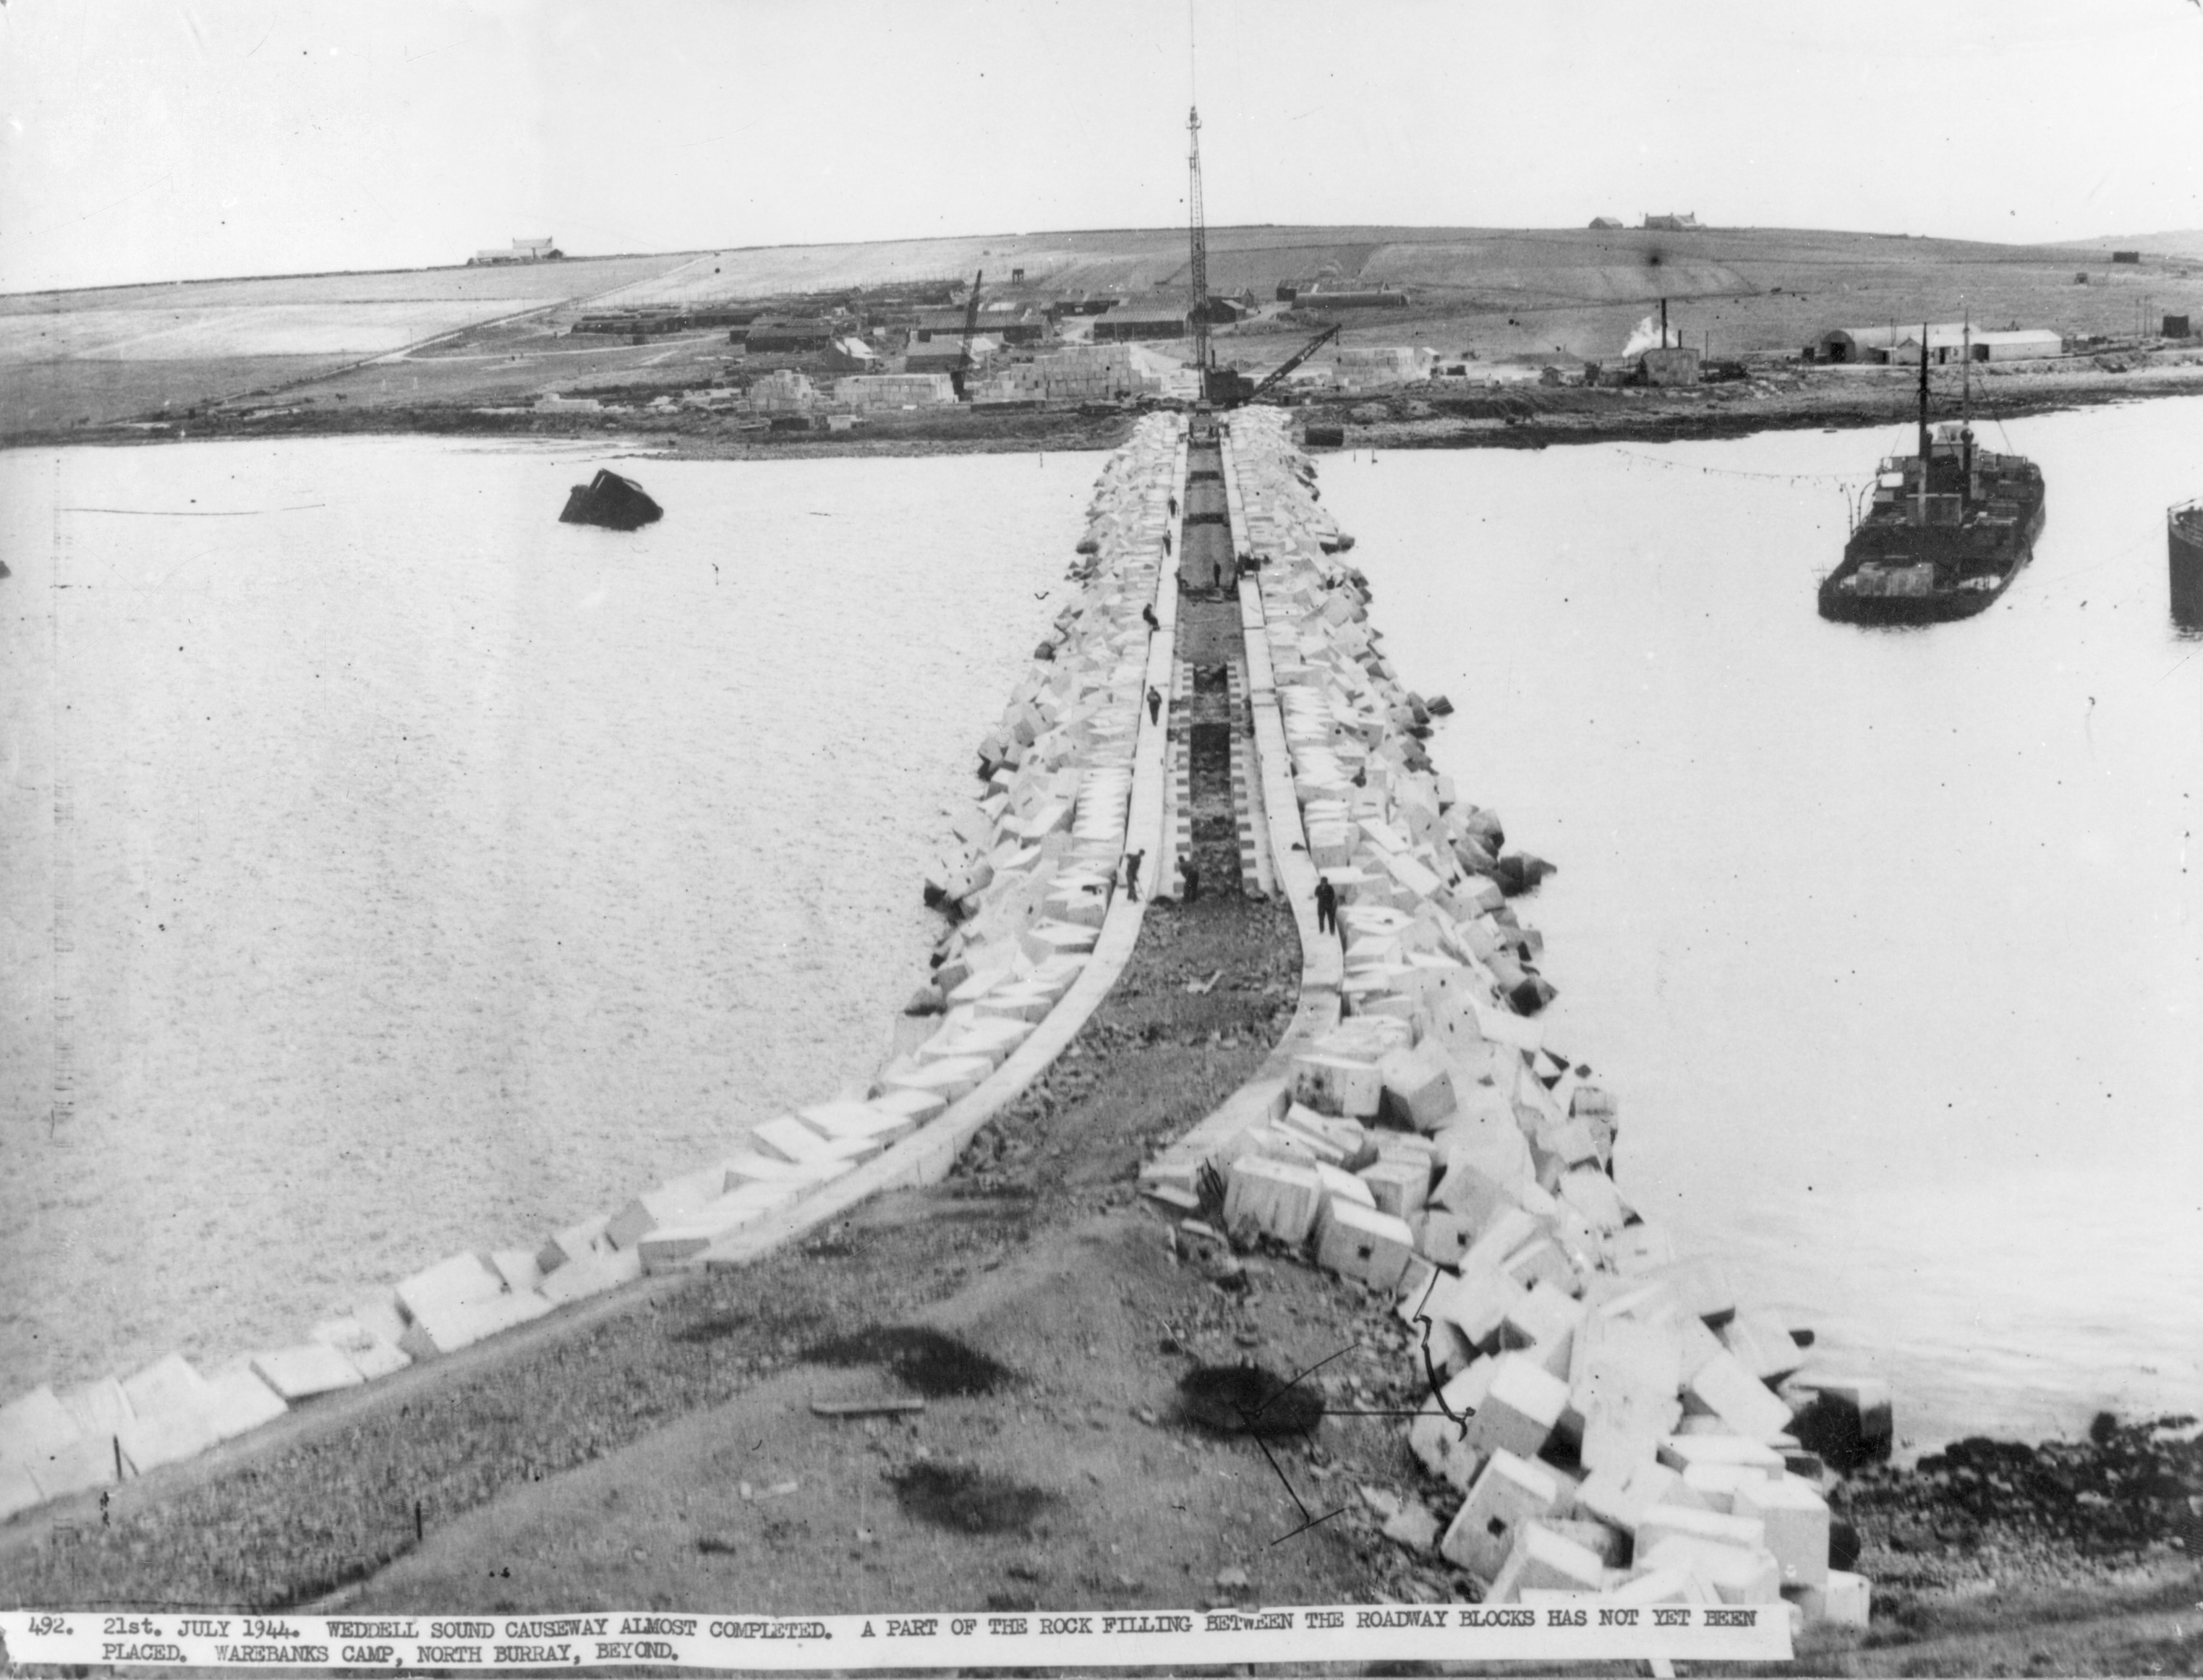 East Weddell Sound causeway, Churchill Barrier no. 3. A part of the rock fill between the blocks has not yet been placed. Camp 34, Burray, in the background, as seen from Glimps Holm.